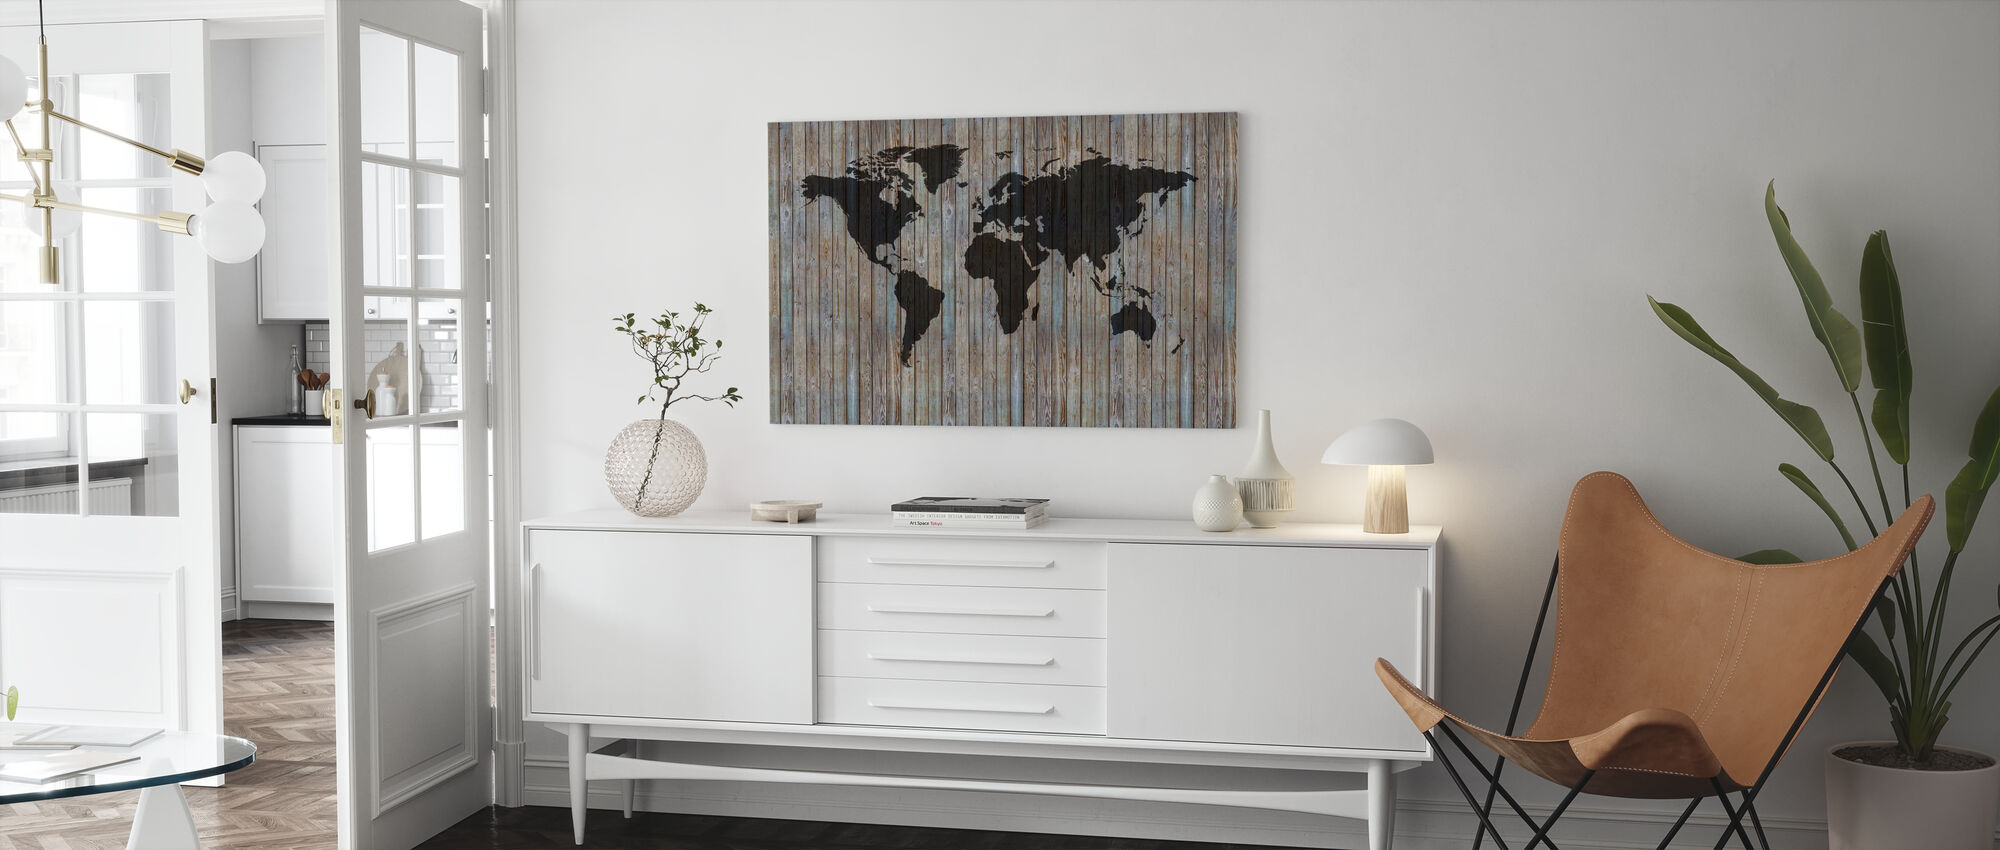 World Map Wooden Plank - Old Silver - Canvas print - Living Room